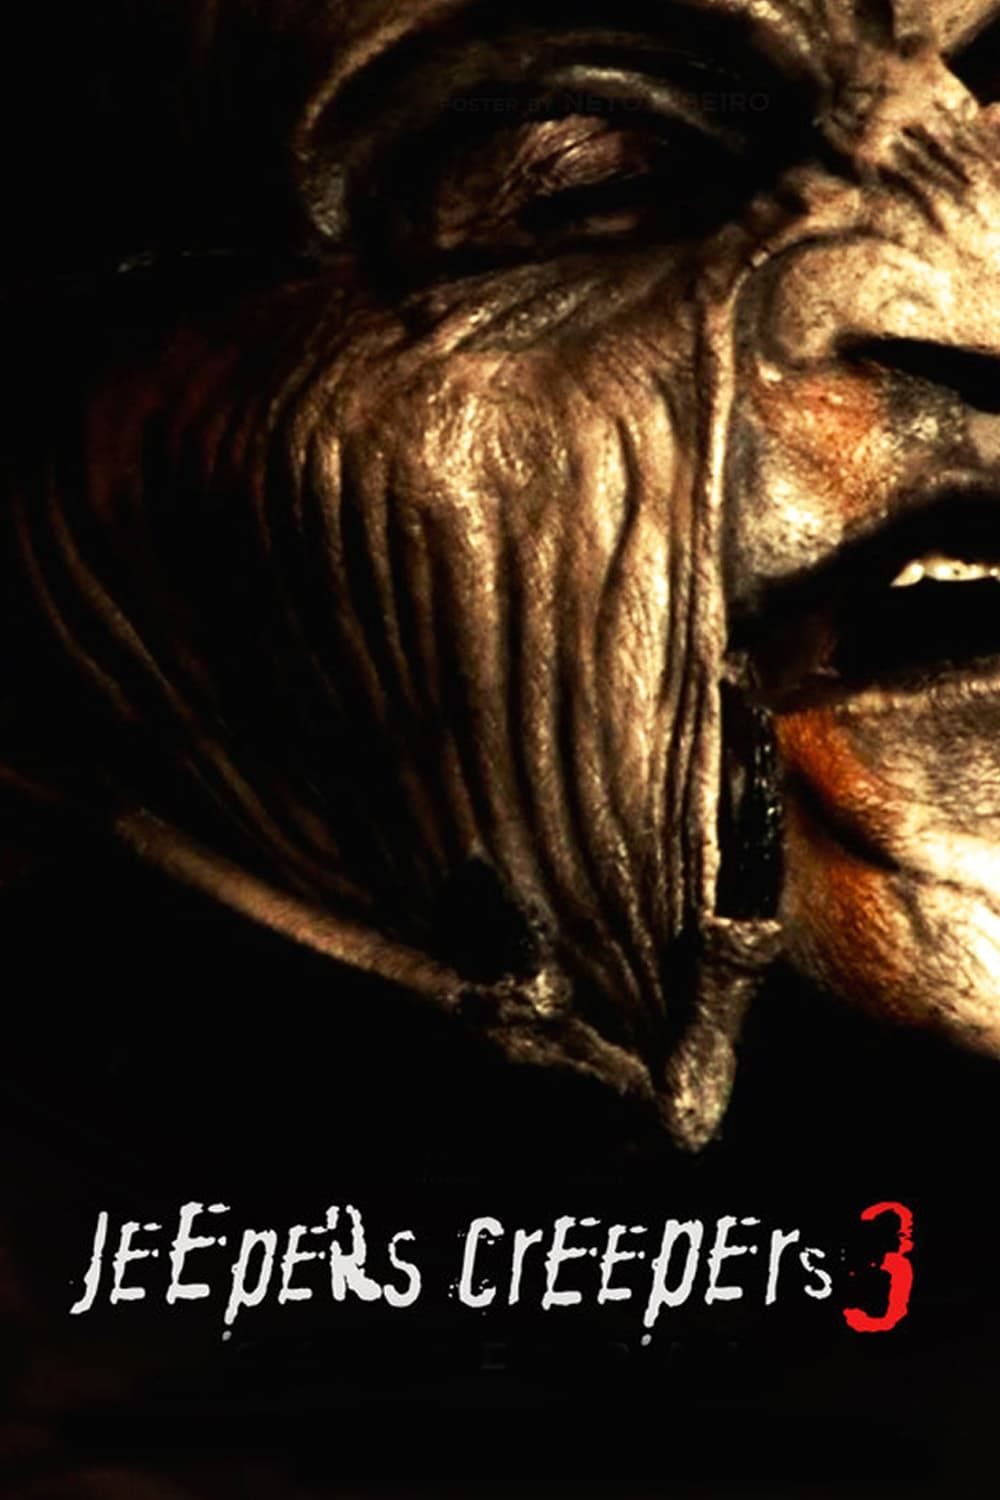 Jeepers Creepers 3 full movie Streaming Online In Hd 720p Video Quality Jeepers Creepers Jeepers Creepers 3 Scary Movies